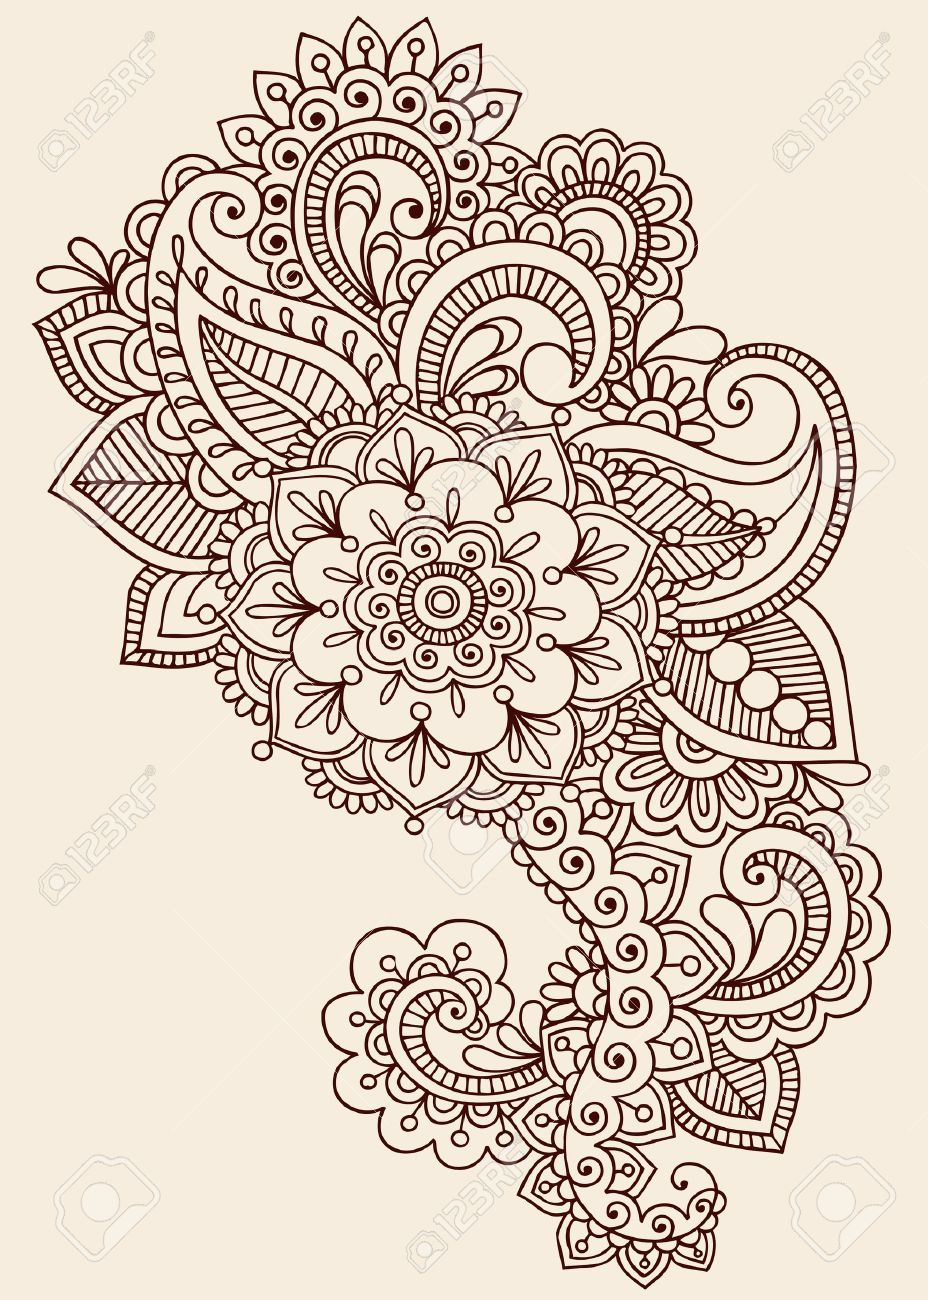 Henna Paisley Flowers Mehndi Tattoo Doodles Design- Abstract Floral Stock Vector - 17164965